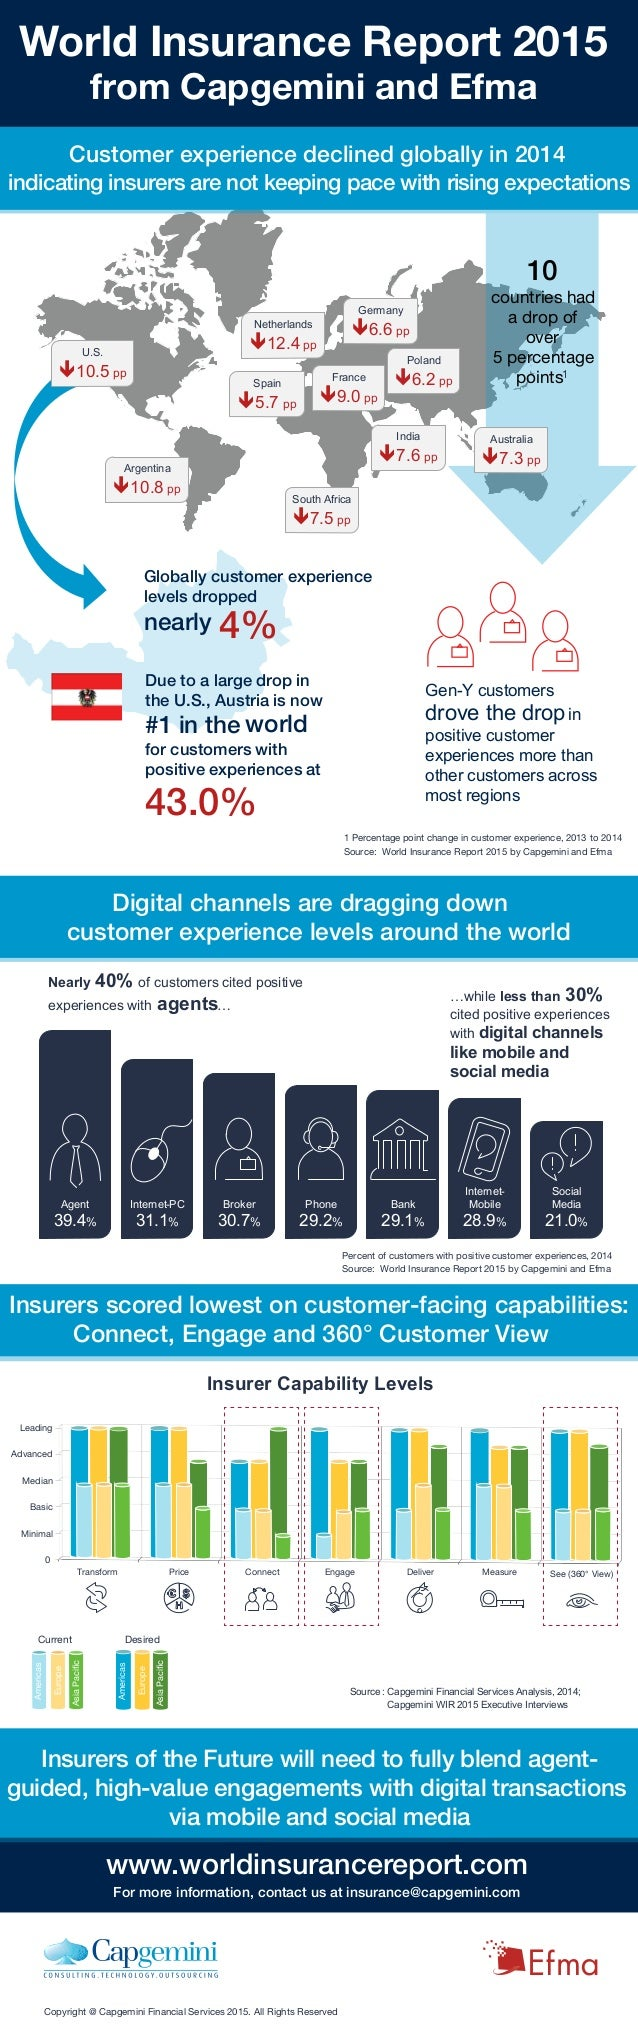 Customer experience declined globally in 2014 indicating insurers are not keeping pace with rising expectations Argentina ...